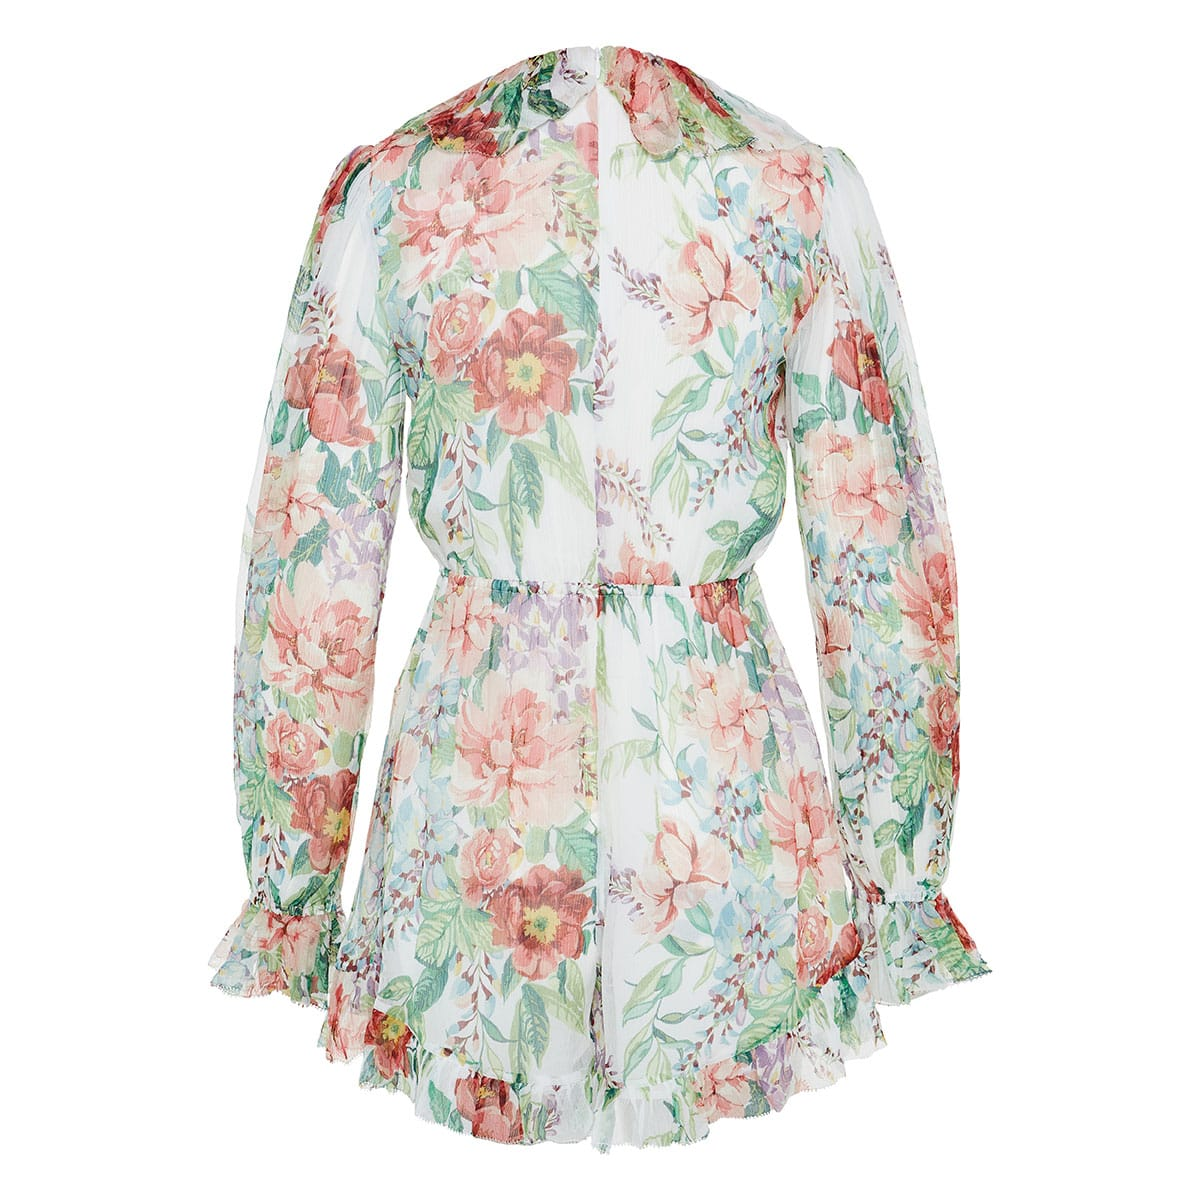 Ruffle-trimmed floral playsuit